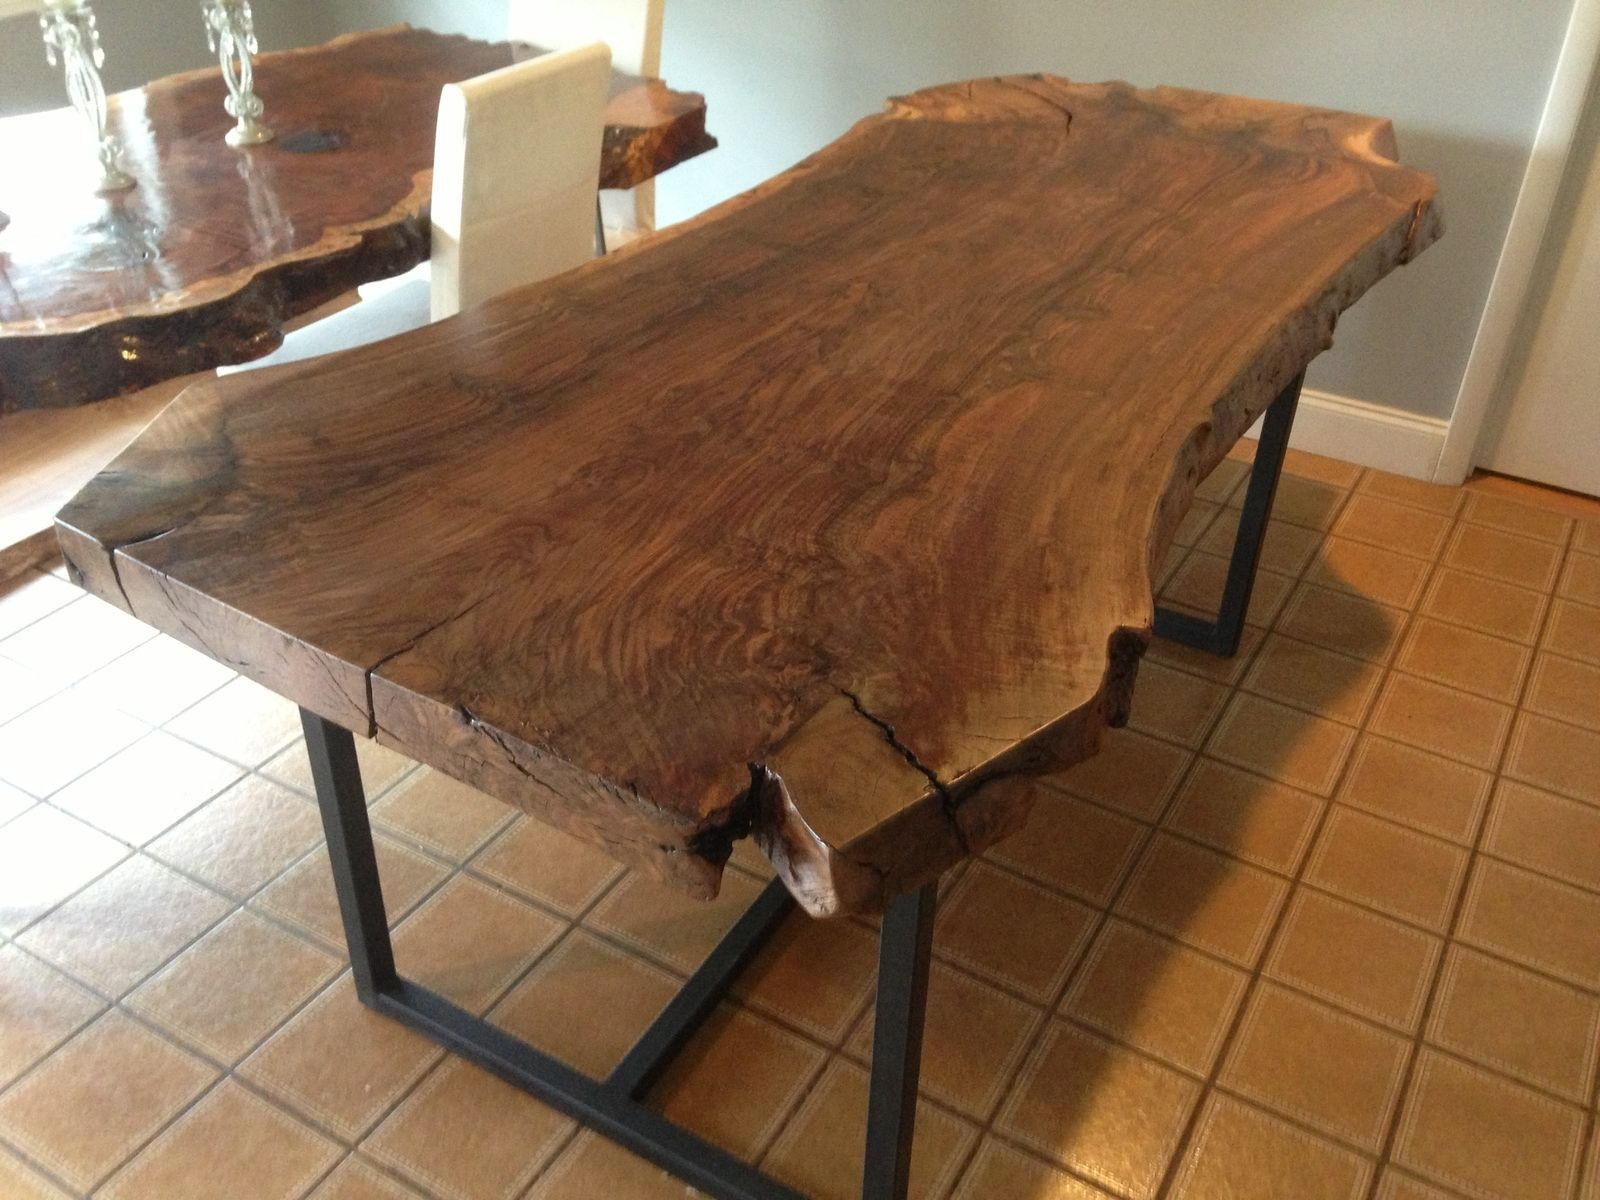 Handmade Live Edge Claro Walnut Dining Table by Ozma Design ... c6682d8d5